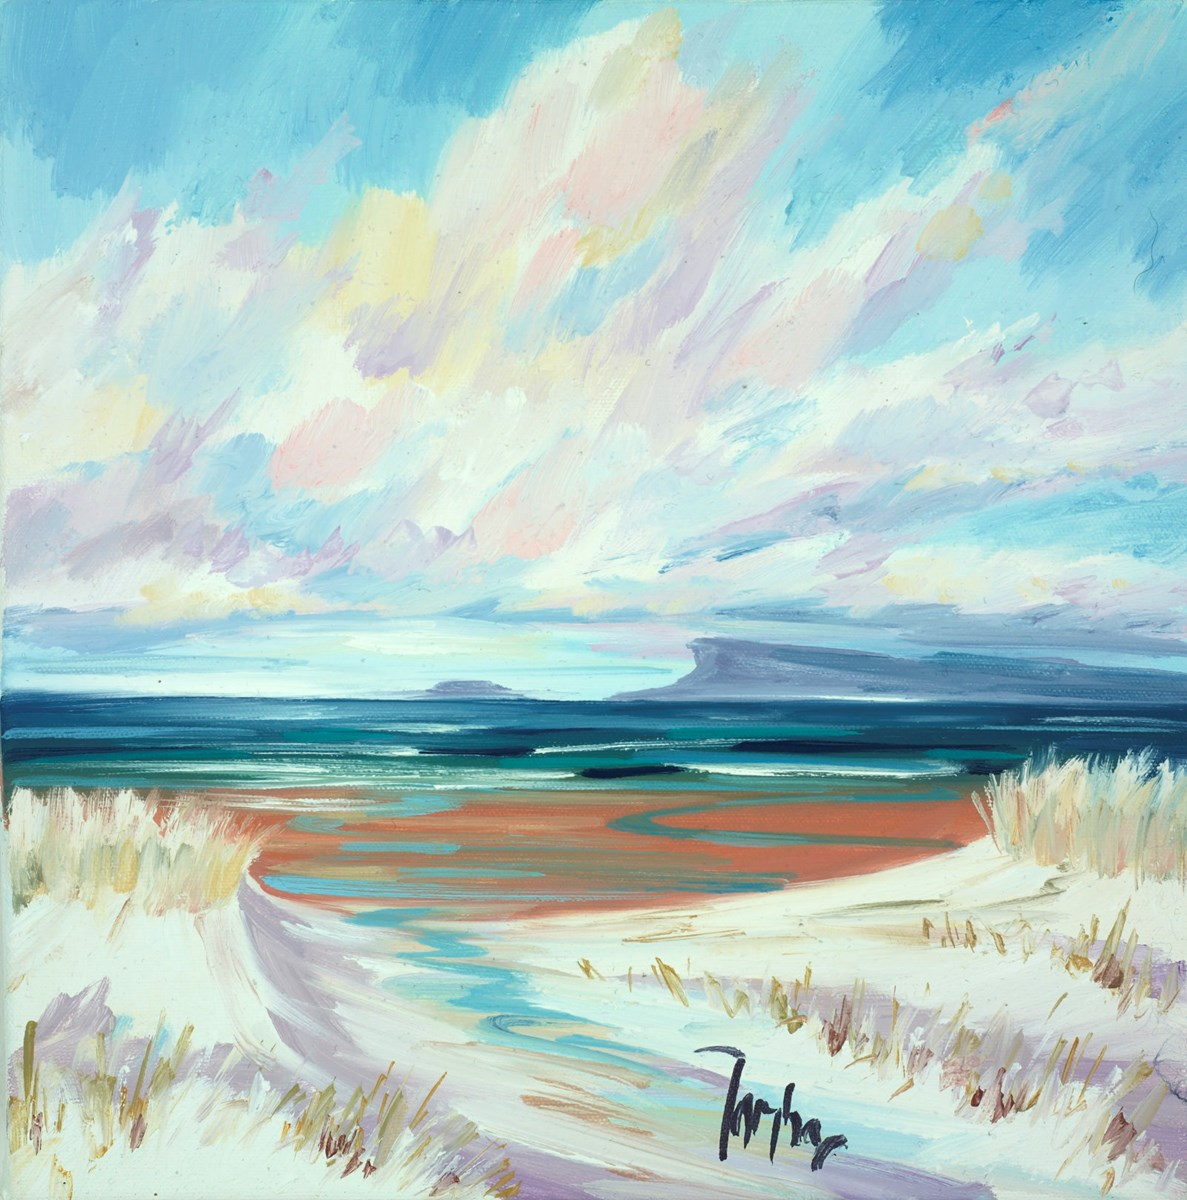 Arisaig Sands III by tom barron -  sized 12x12 inches. Available from Whitewall Galleries